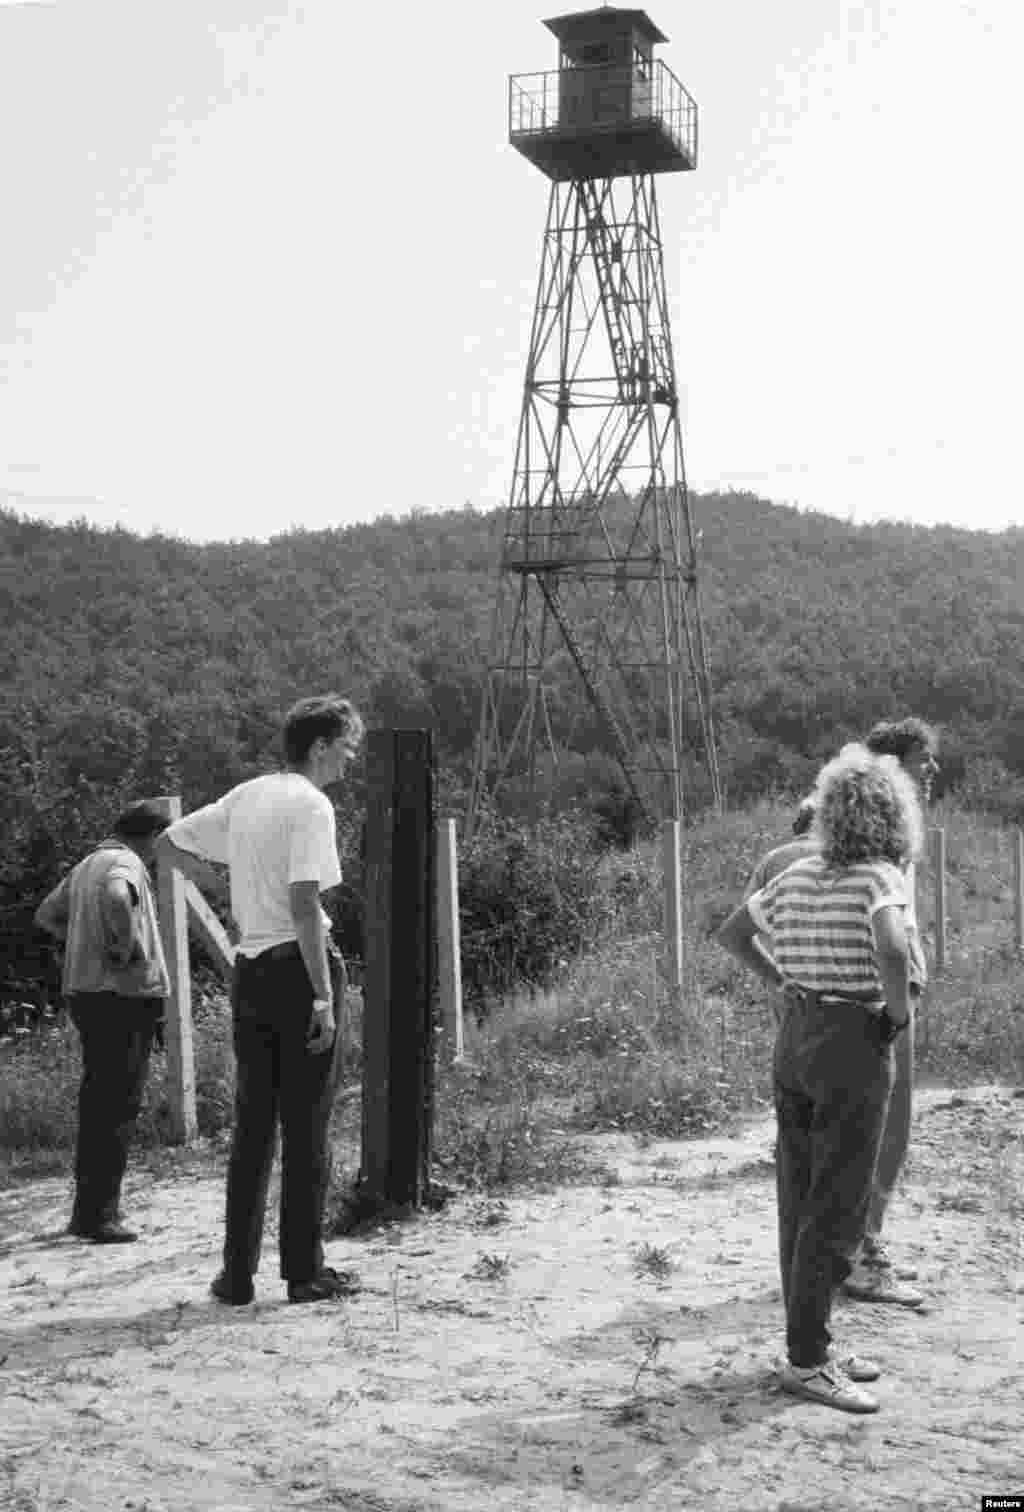 East German refugees observe the Austrian border within sight of a Hungarian watchtower on August 17.